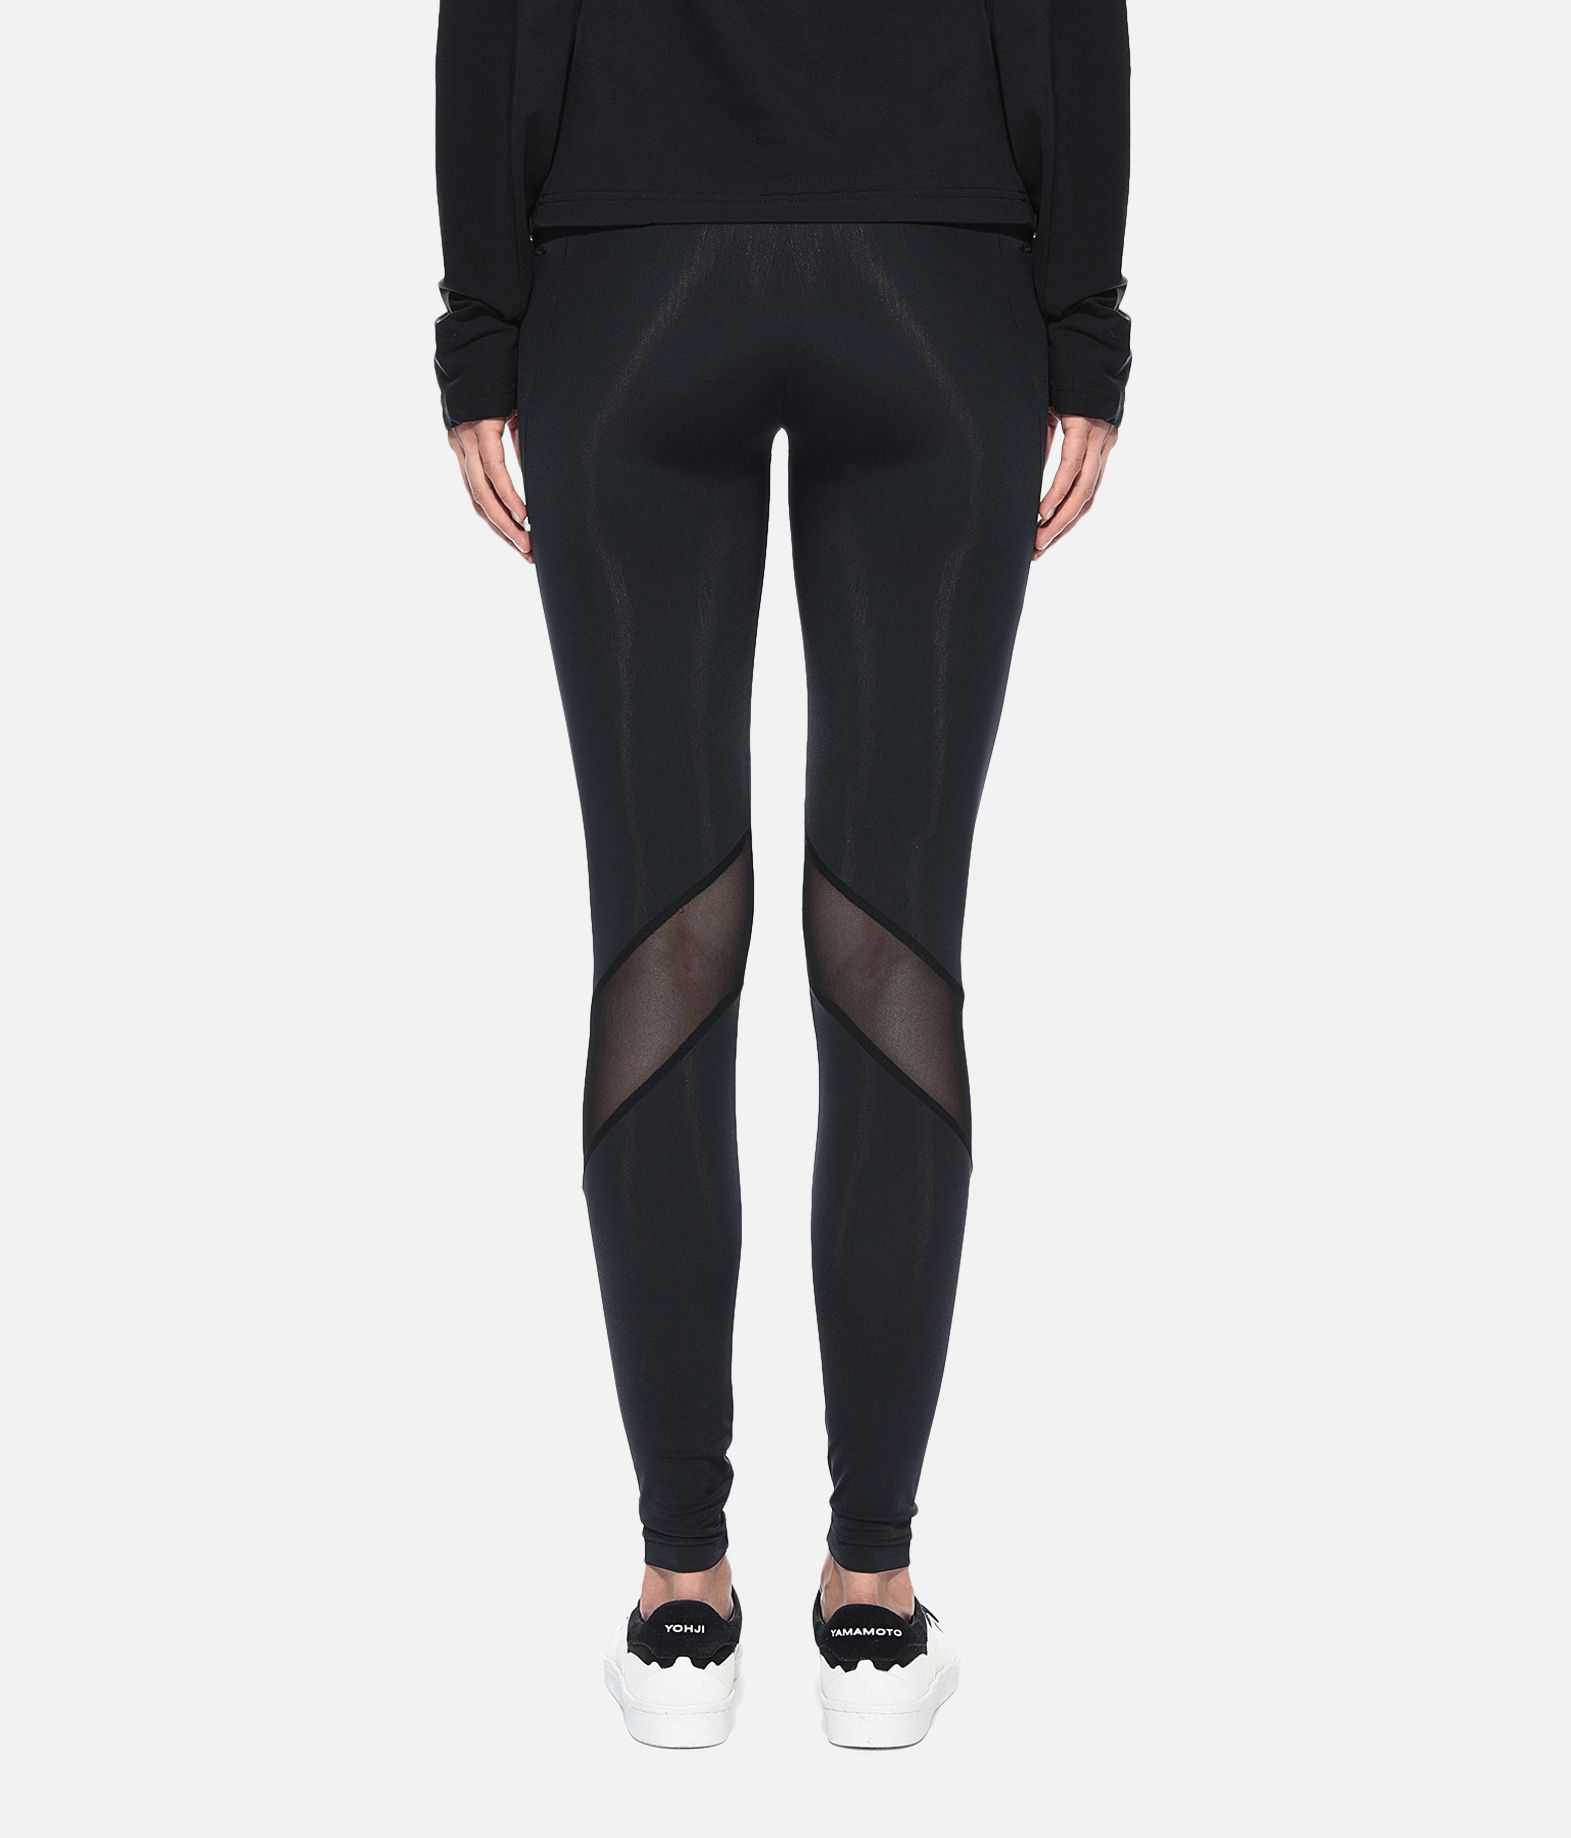 Y-3 Y-3 New Classic Tights Leggings Woman d